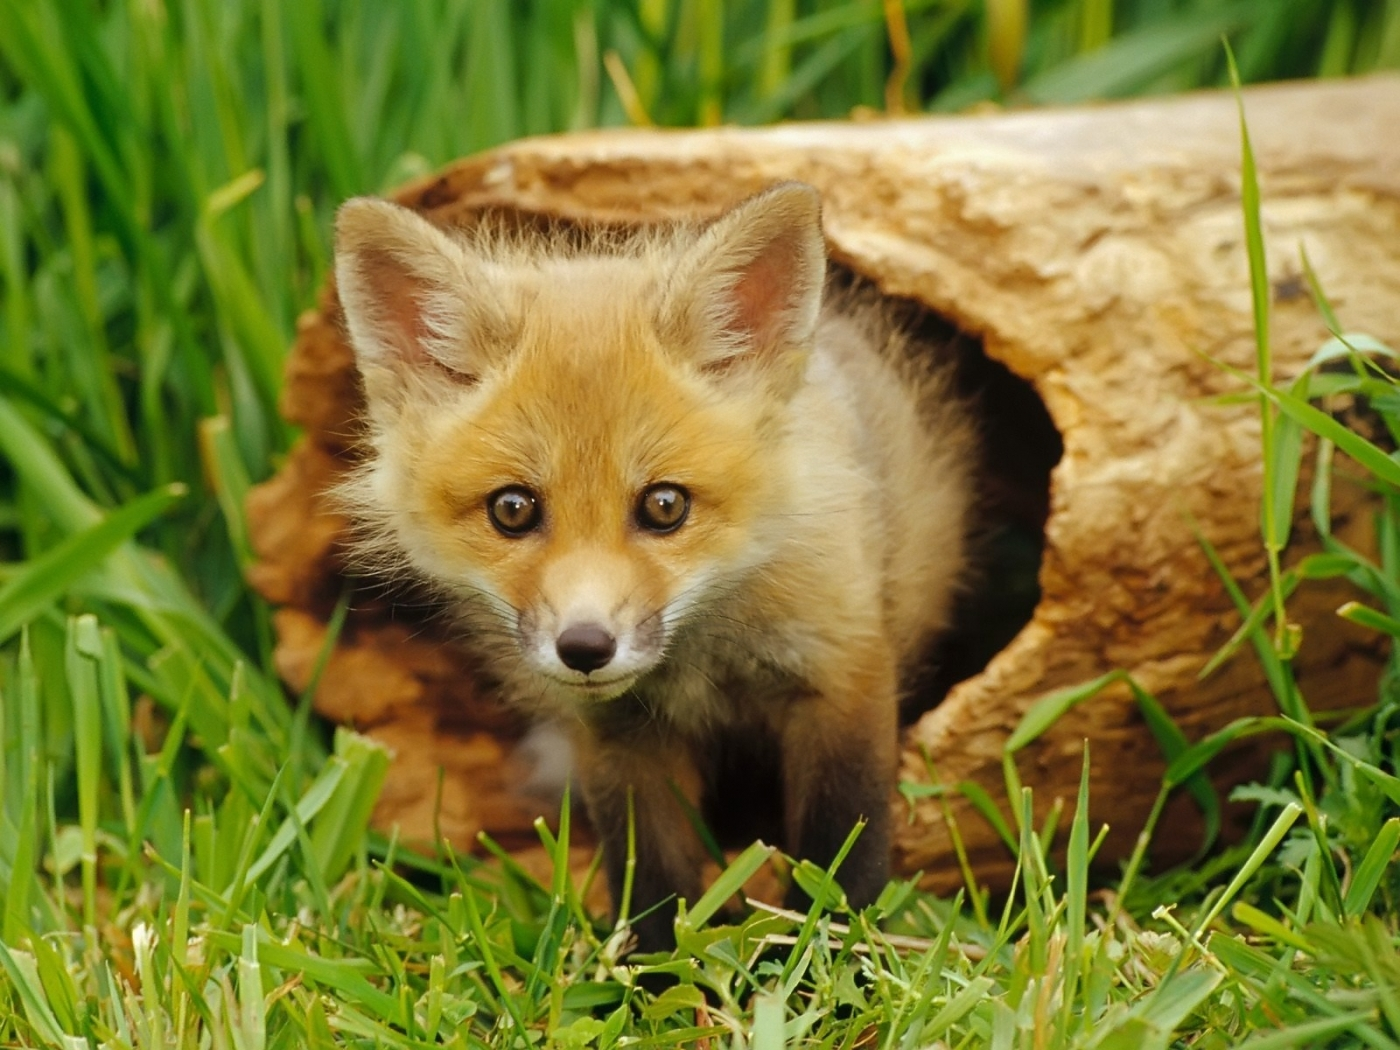 49715 download wallpaper Animals, Fox screensavers and pictures for free